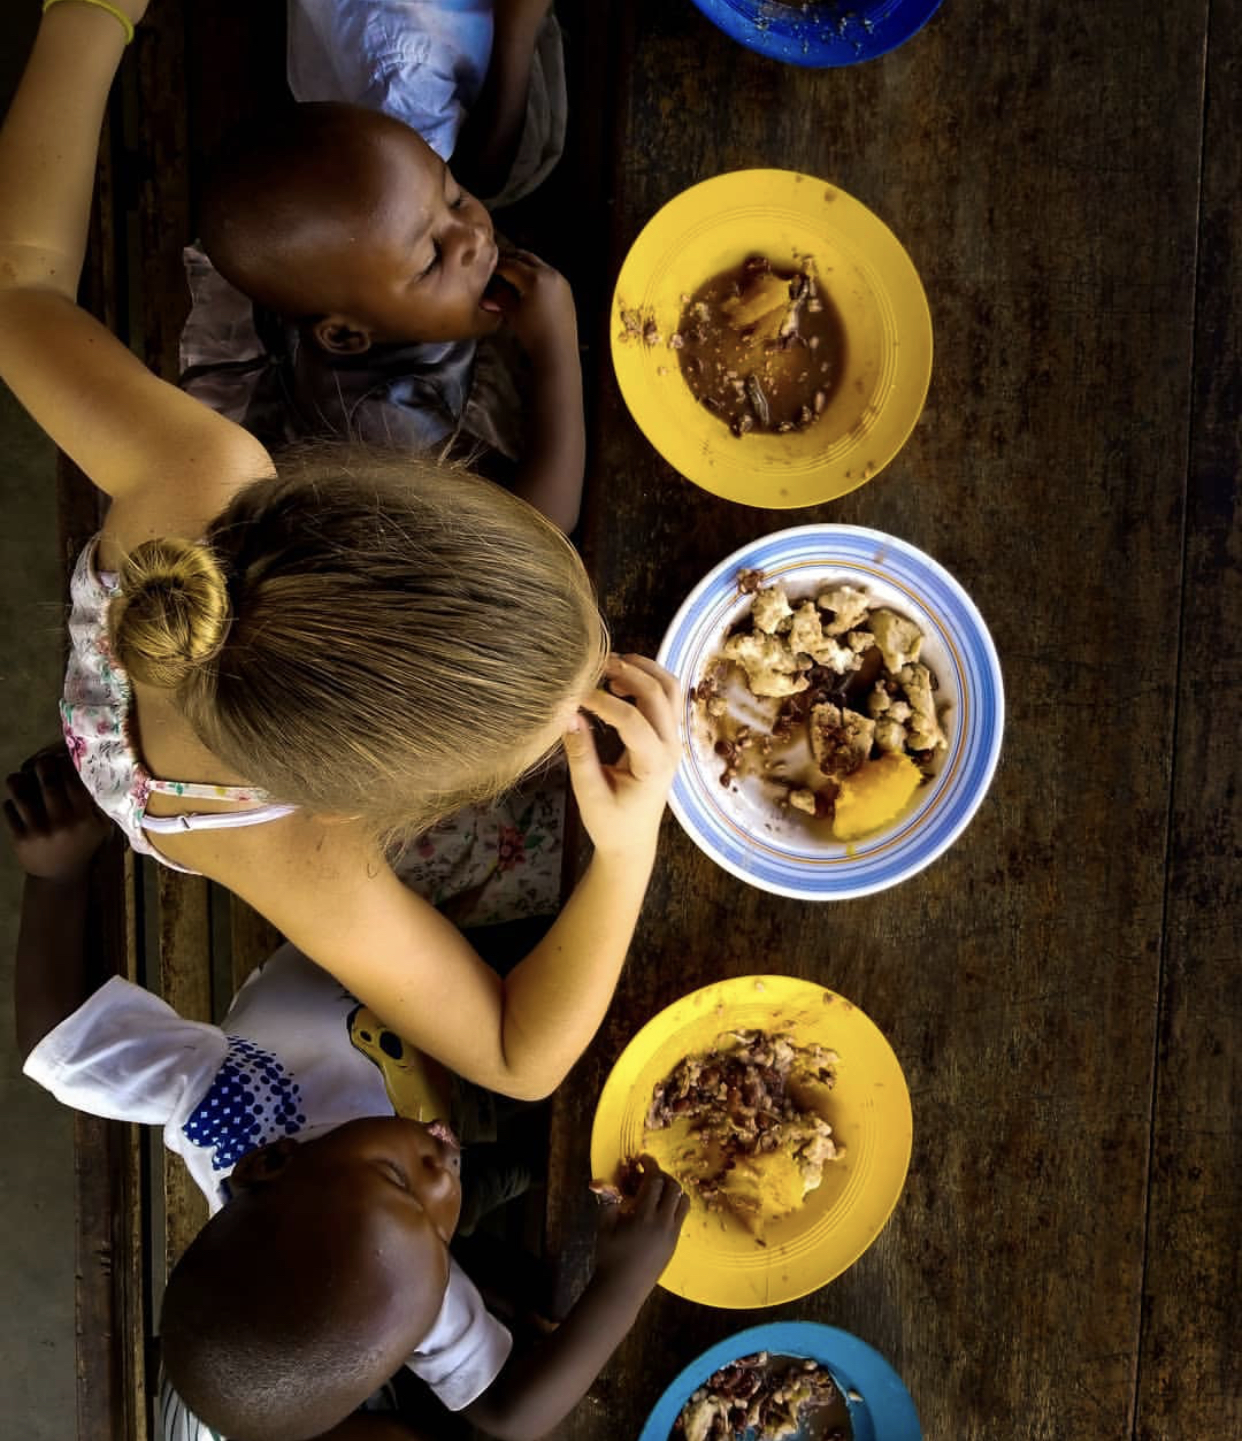 Food for children… - By providing much needed food for children at Hopeland School and Arise Africa International, we are helping to ensure that the children are healthy and can learn all they need to escape the circle of poverty.